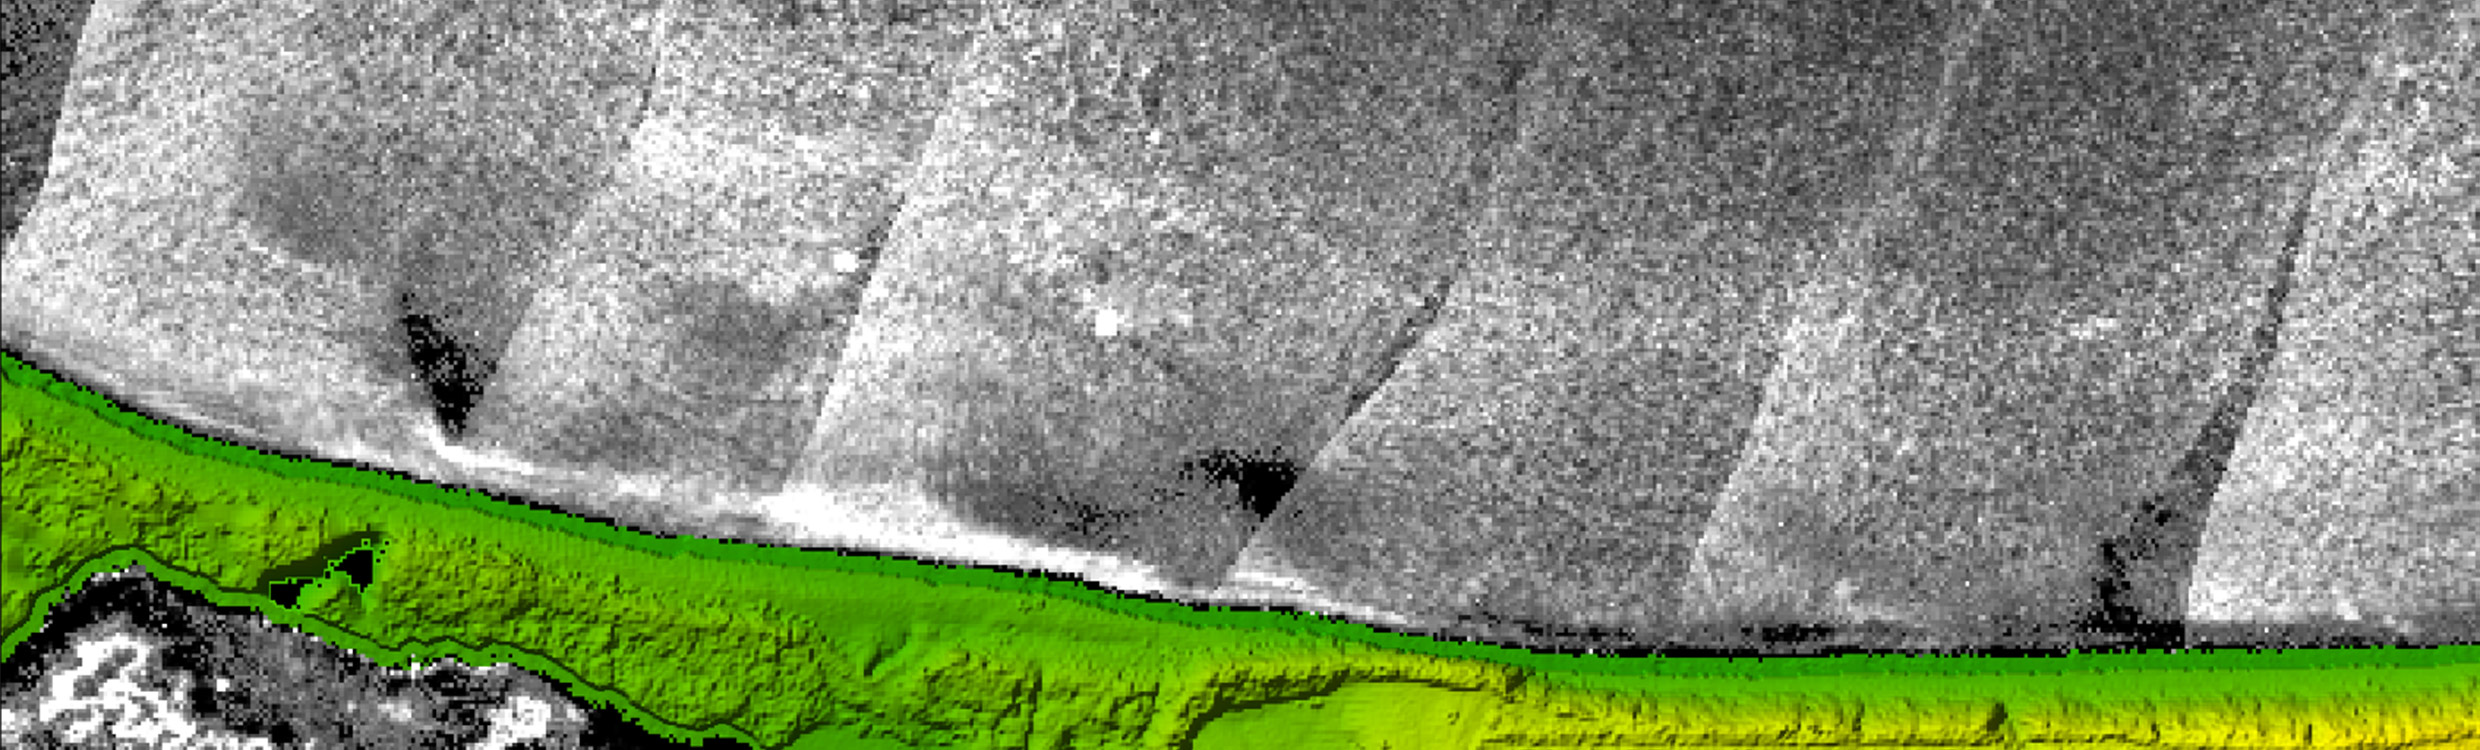 Mapping underwater terrain with bathymetric LiDAR